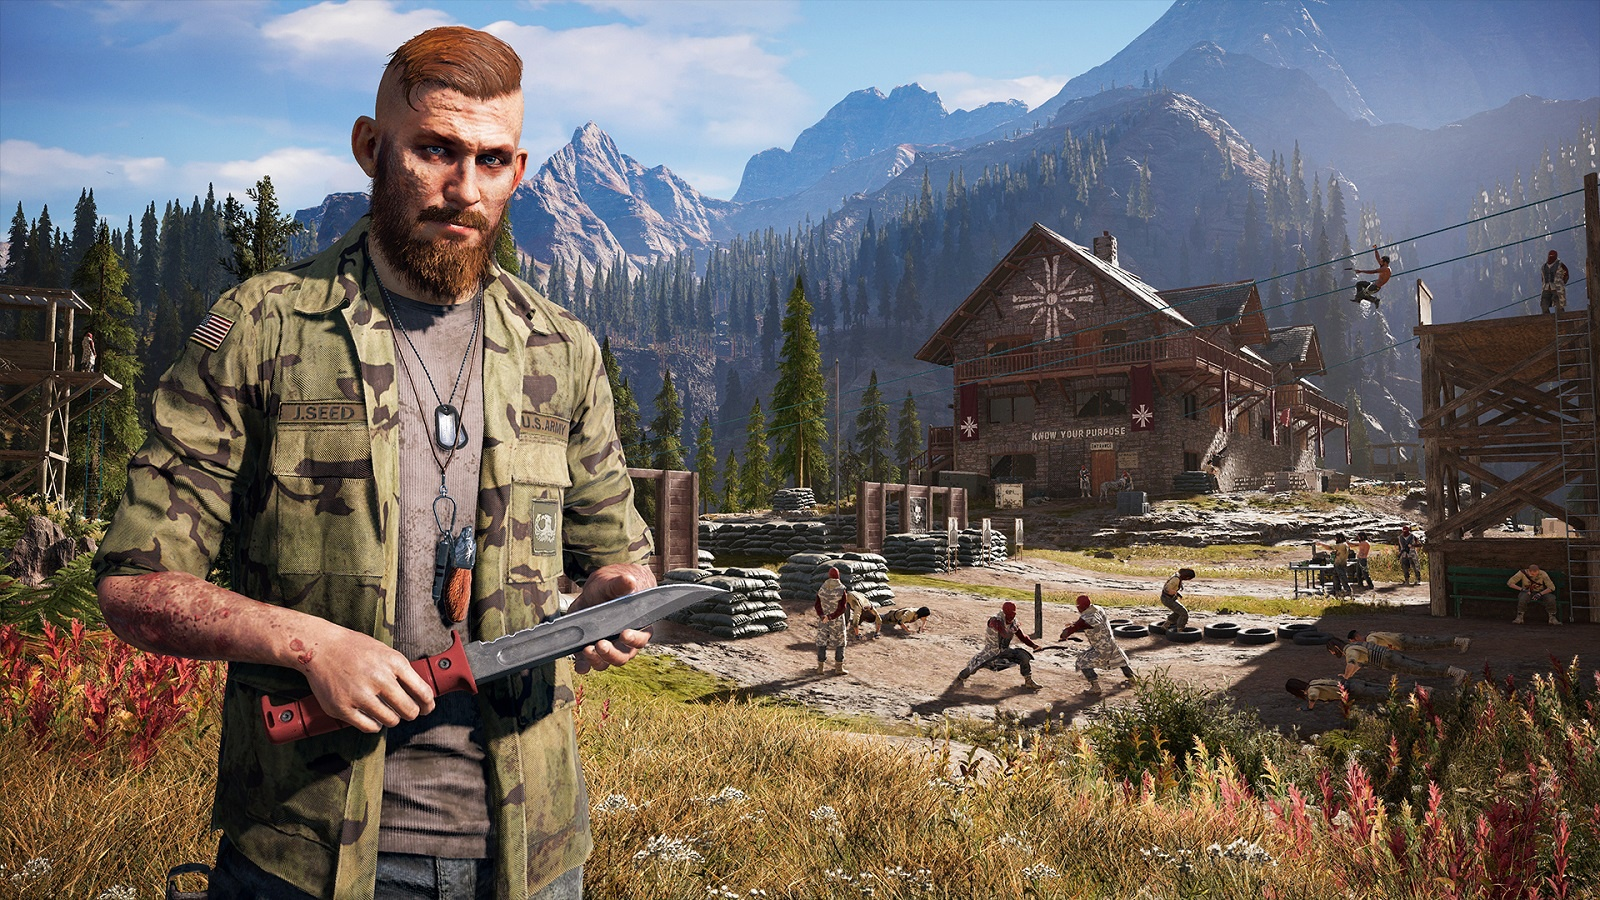 Is Far Cry 5 Related To The Previous Far Cry Games If Yes Will I Be Able To Understand The Whole Story Quora